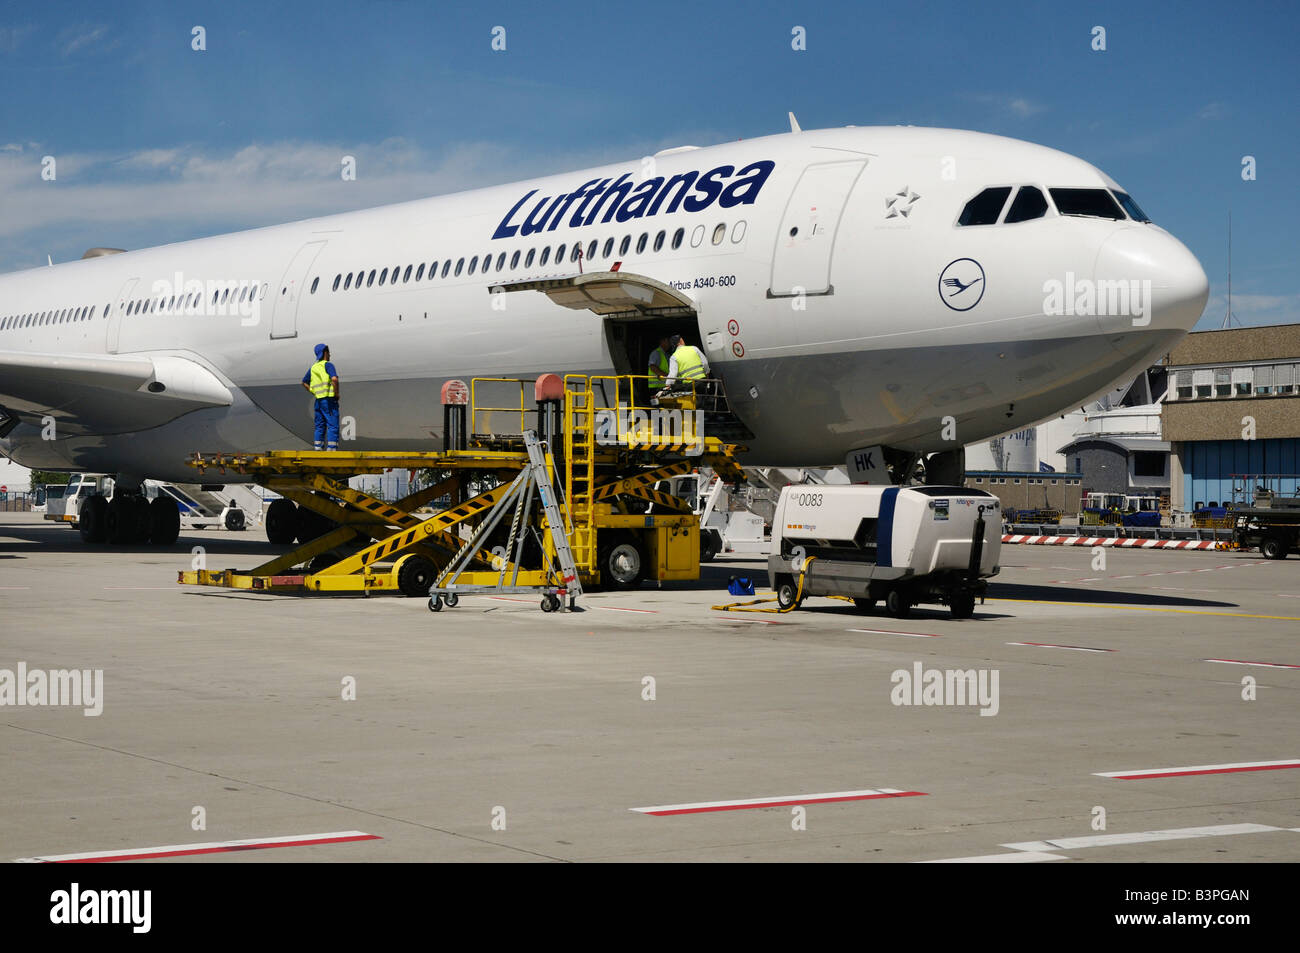 Lufthansa plane being loaded, Frankfurt Airport, Hesse, Germany, Europe - Stock Image